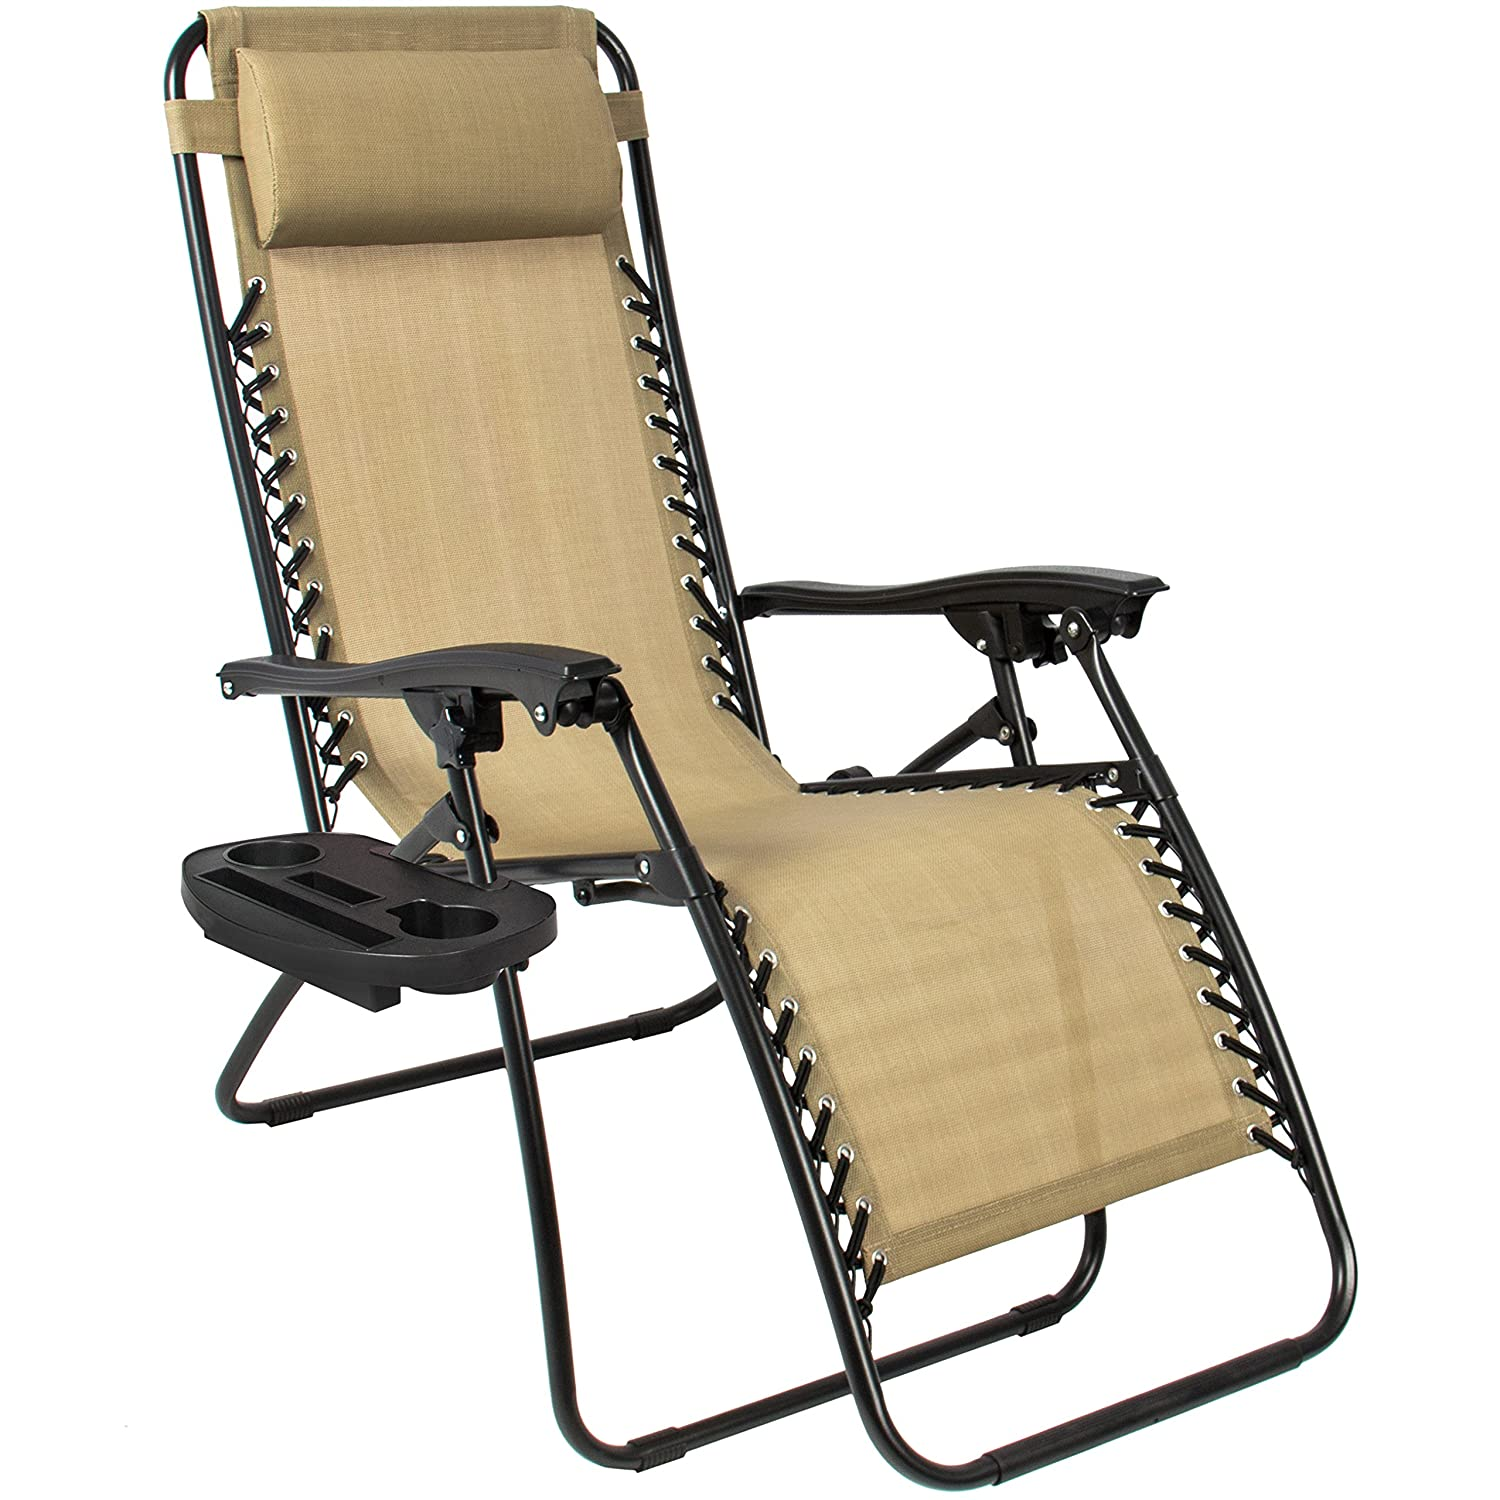 Amazon.com : Best Choice Products Set Of 2 Adjustable Zero Gravity Lounge  Chair Recliners For Patio, Pool W/Cup Holders   Tan : Garden U0026 Outdoor